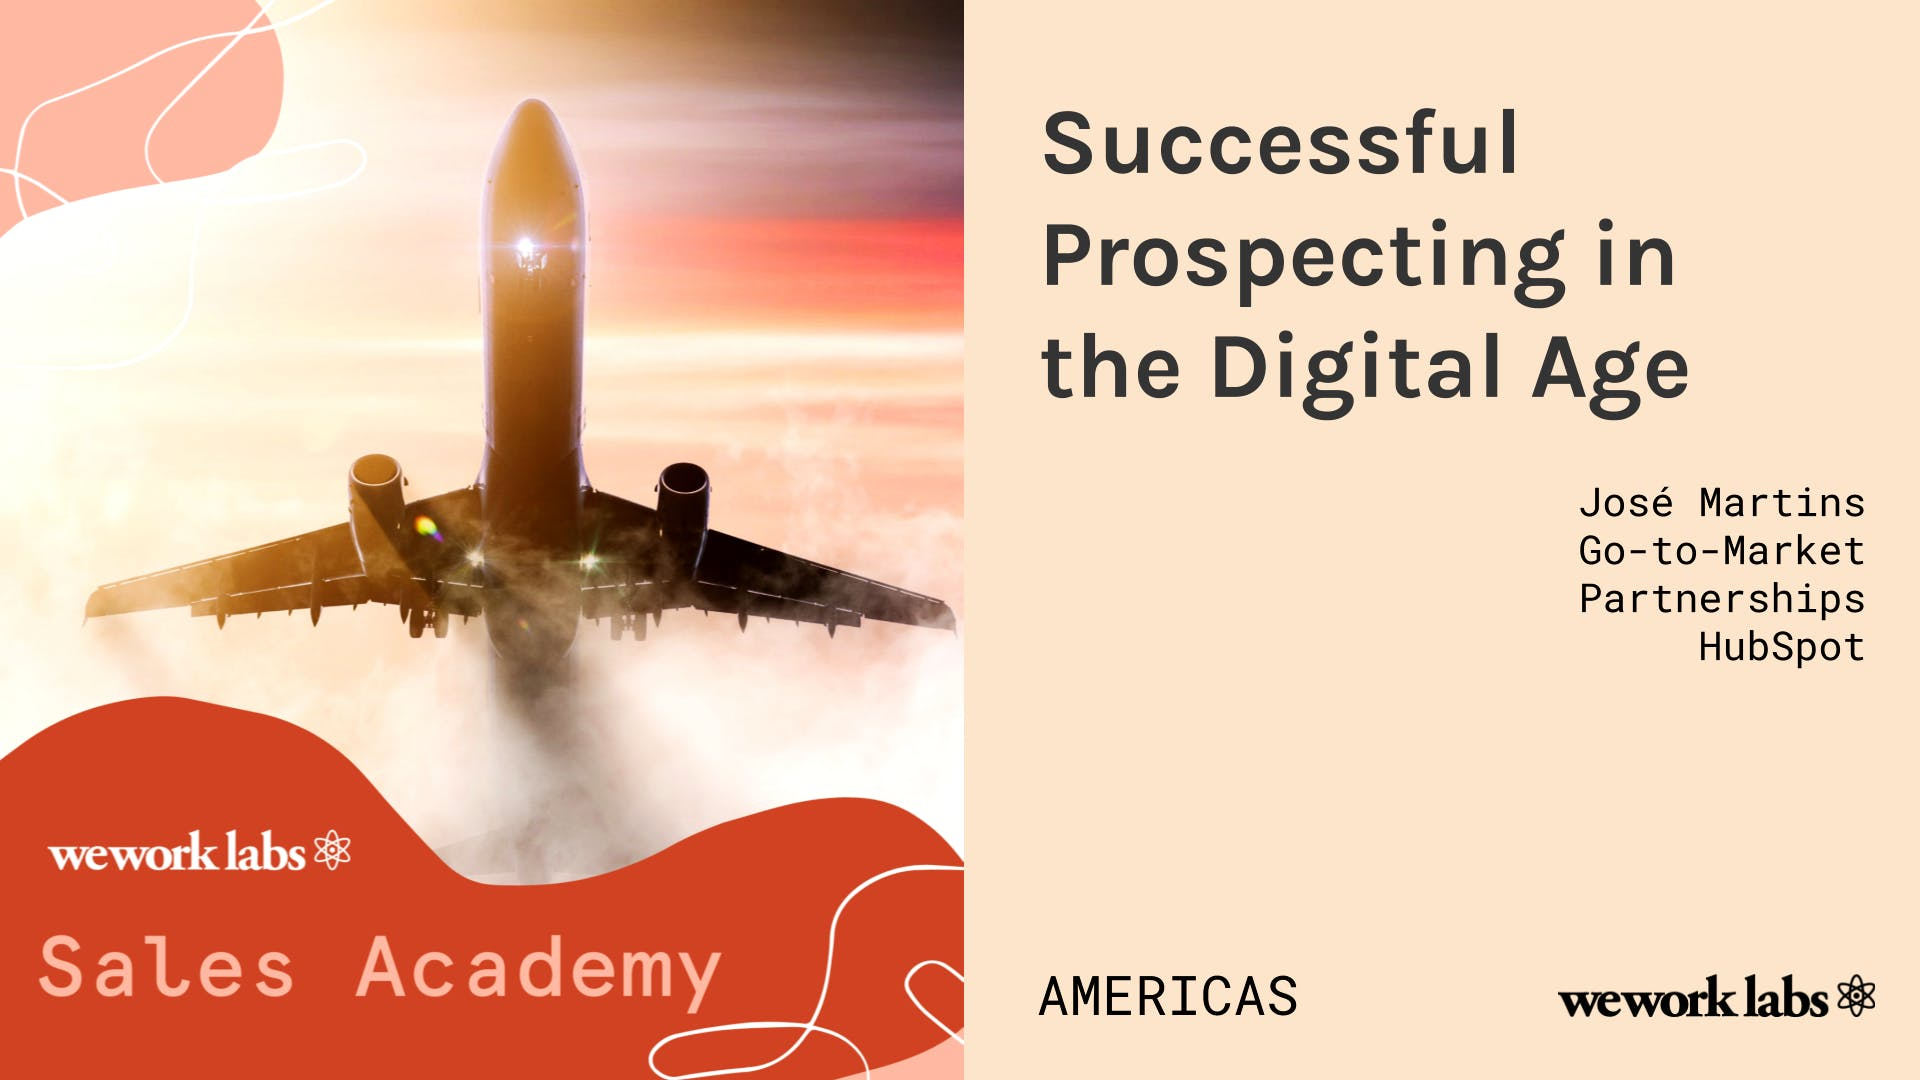 Sales Academy (Americas): Successful Prospecting in the Digital Age